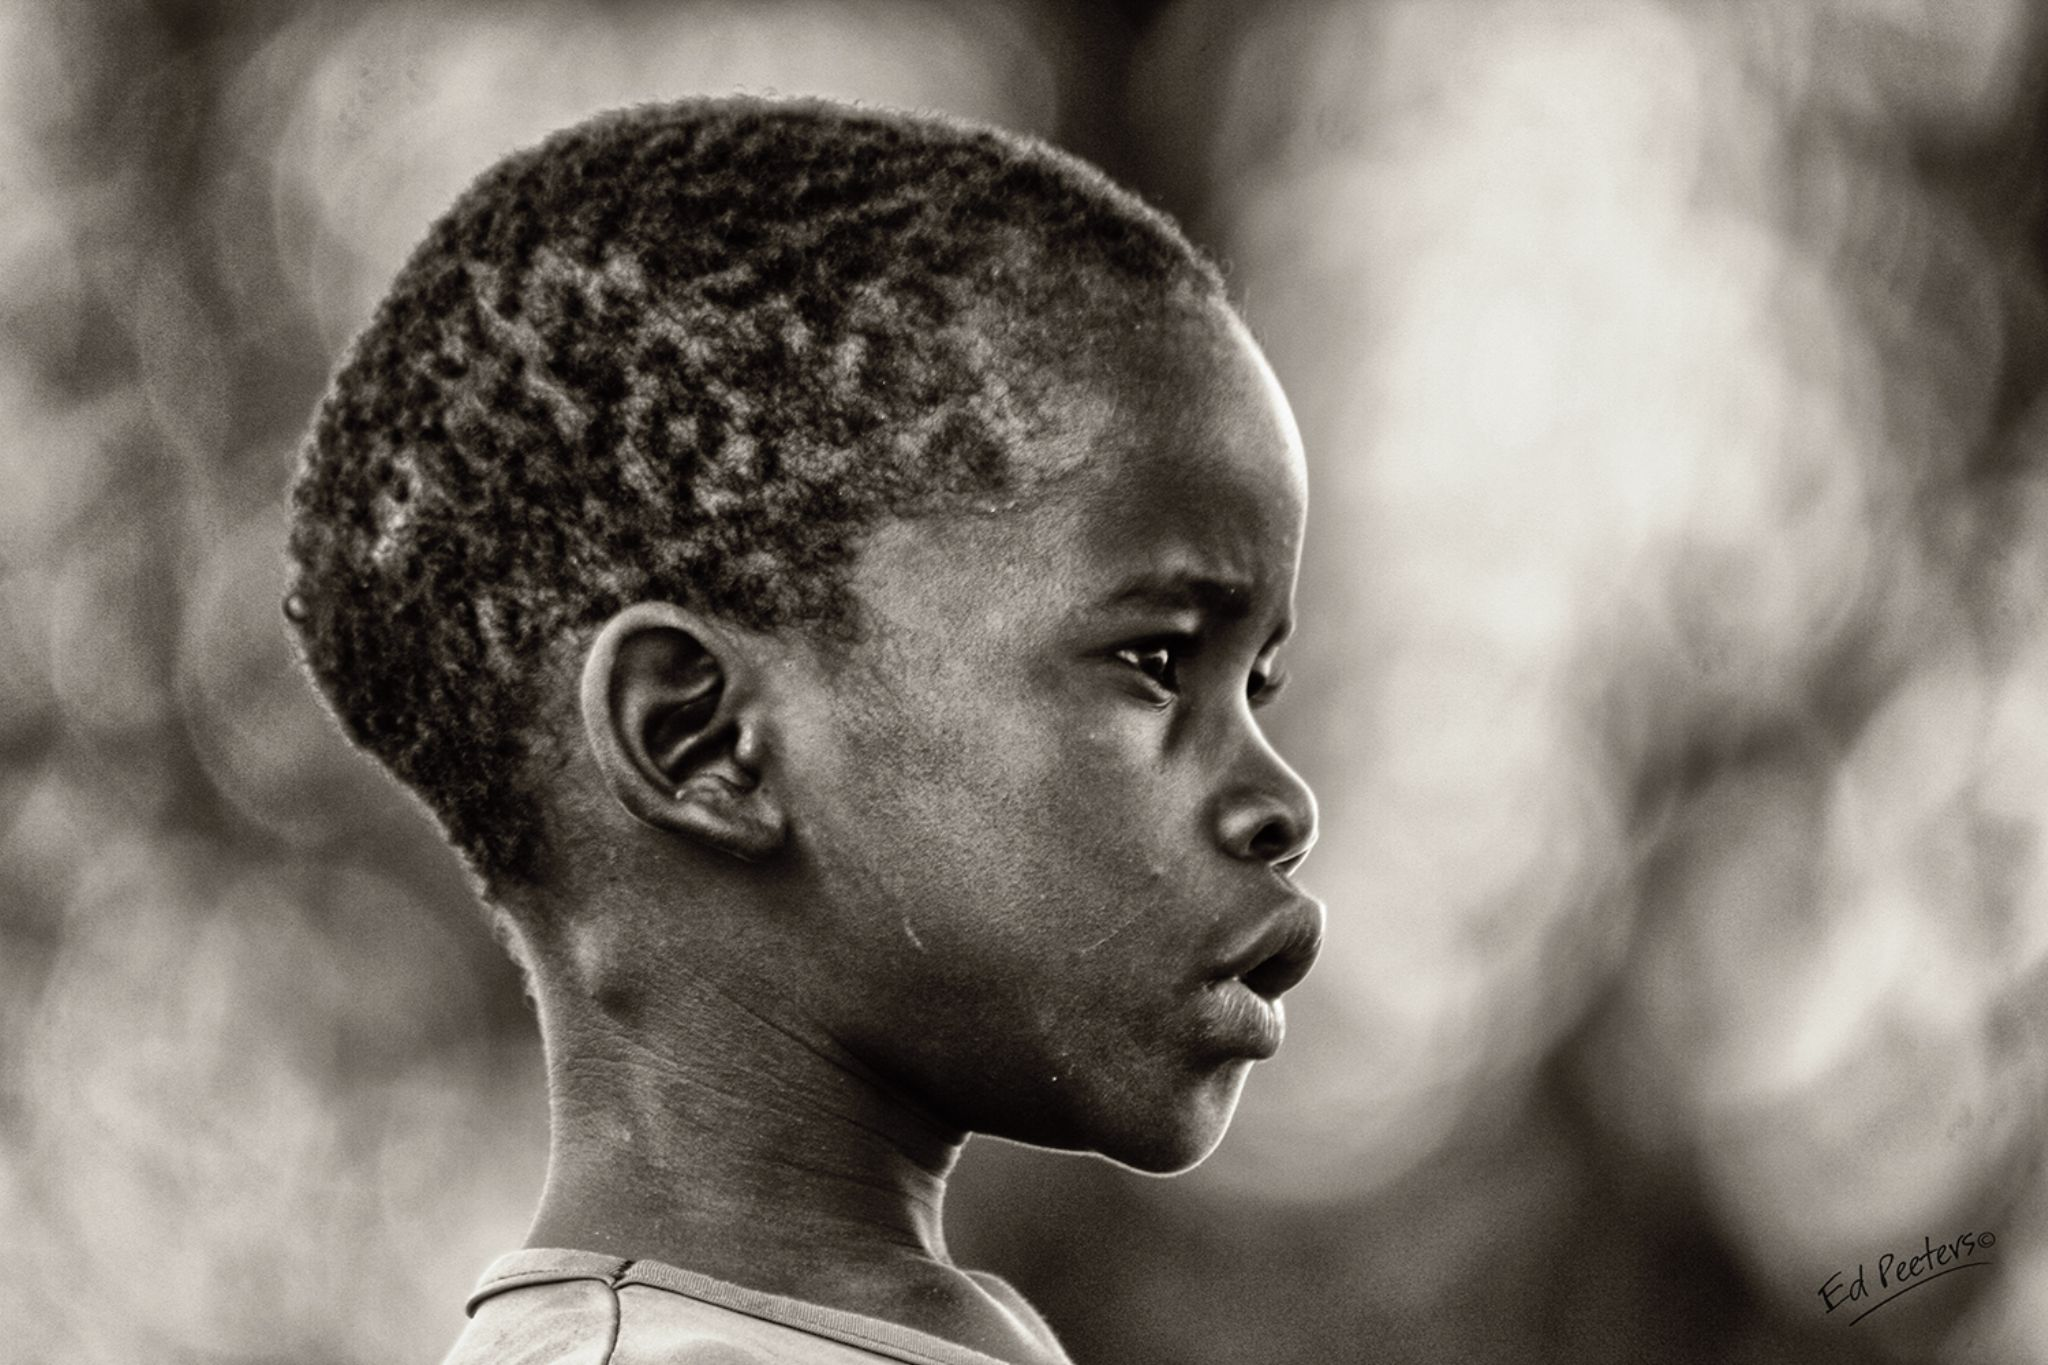 Child by Ed Peeters Photography